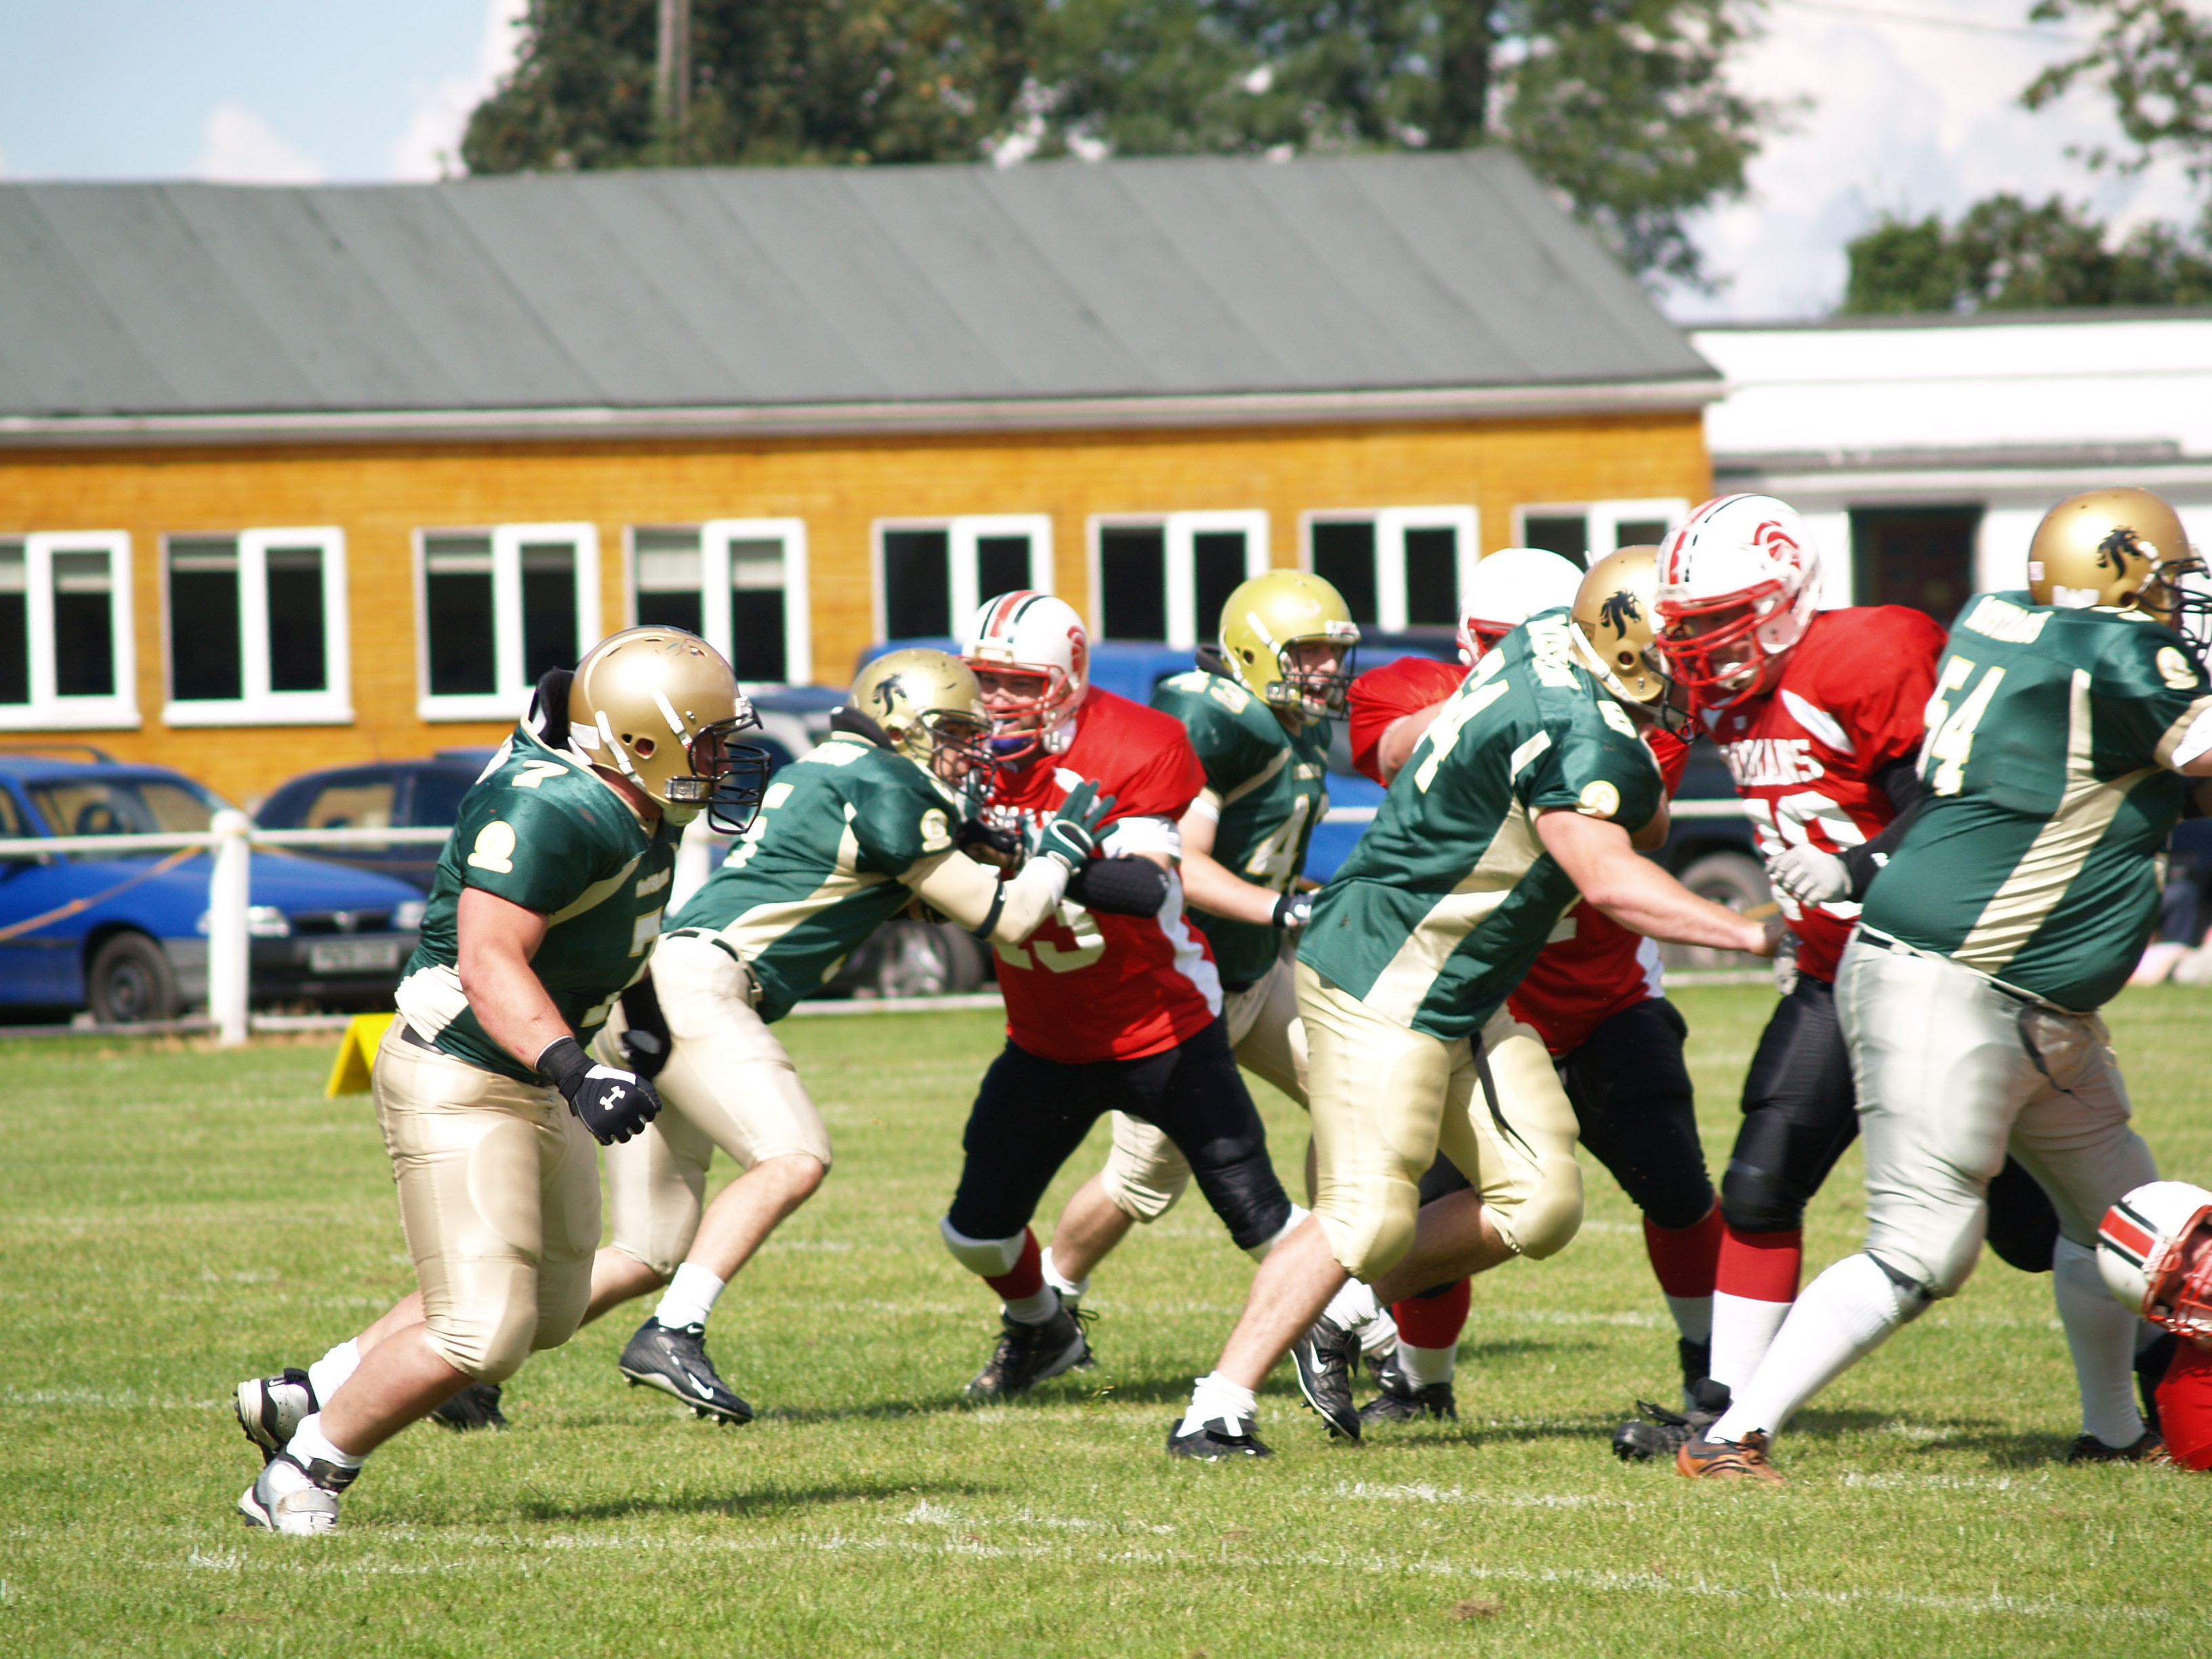 List of American football teams in the United Kingdom